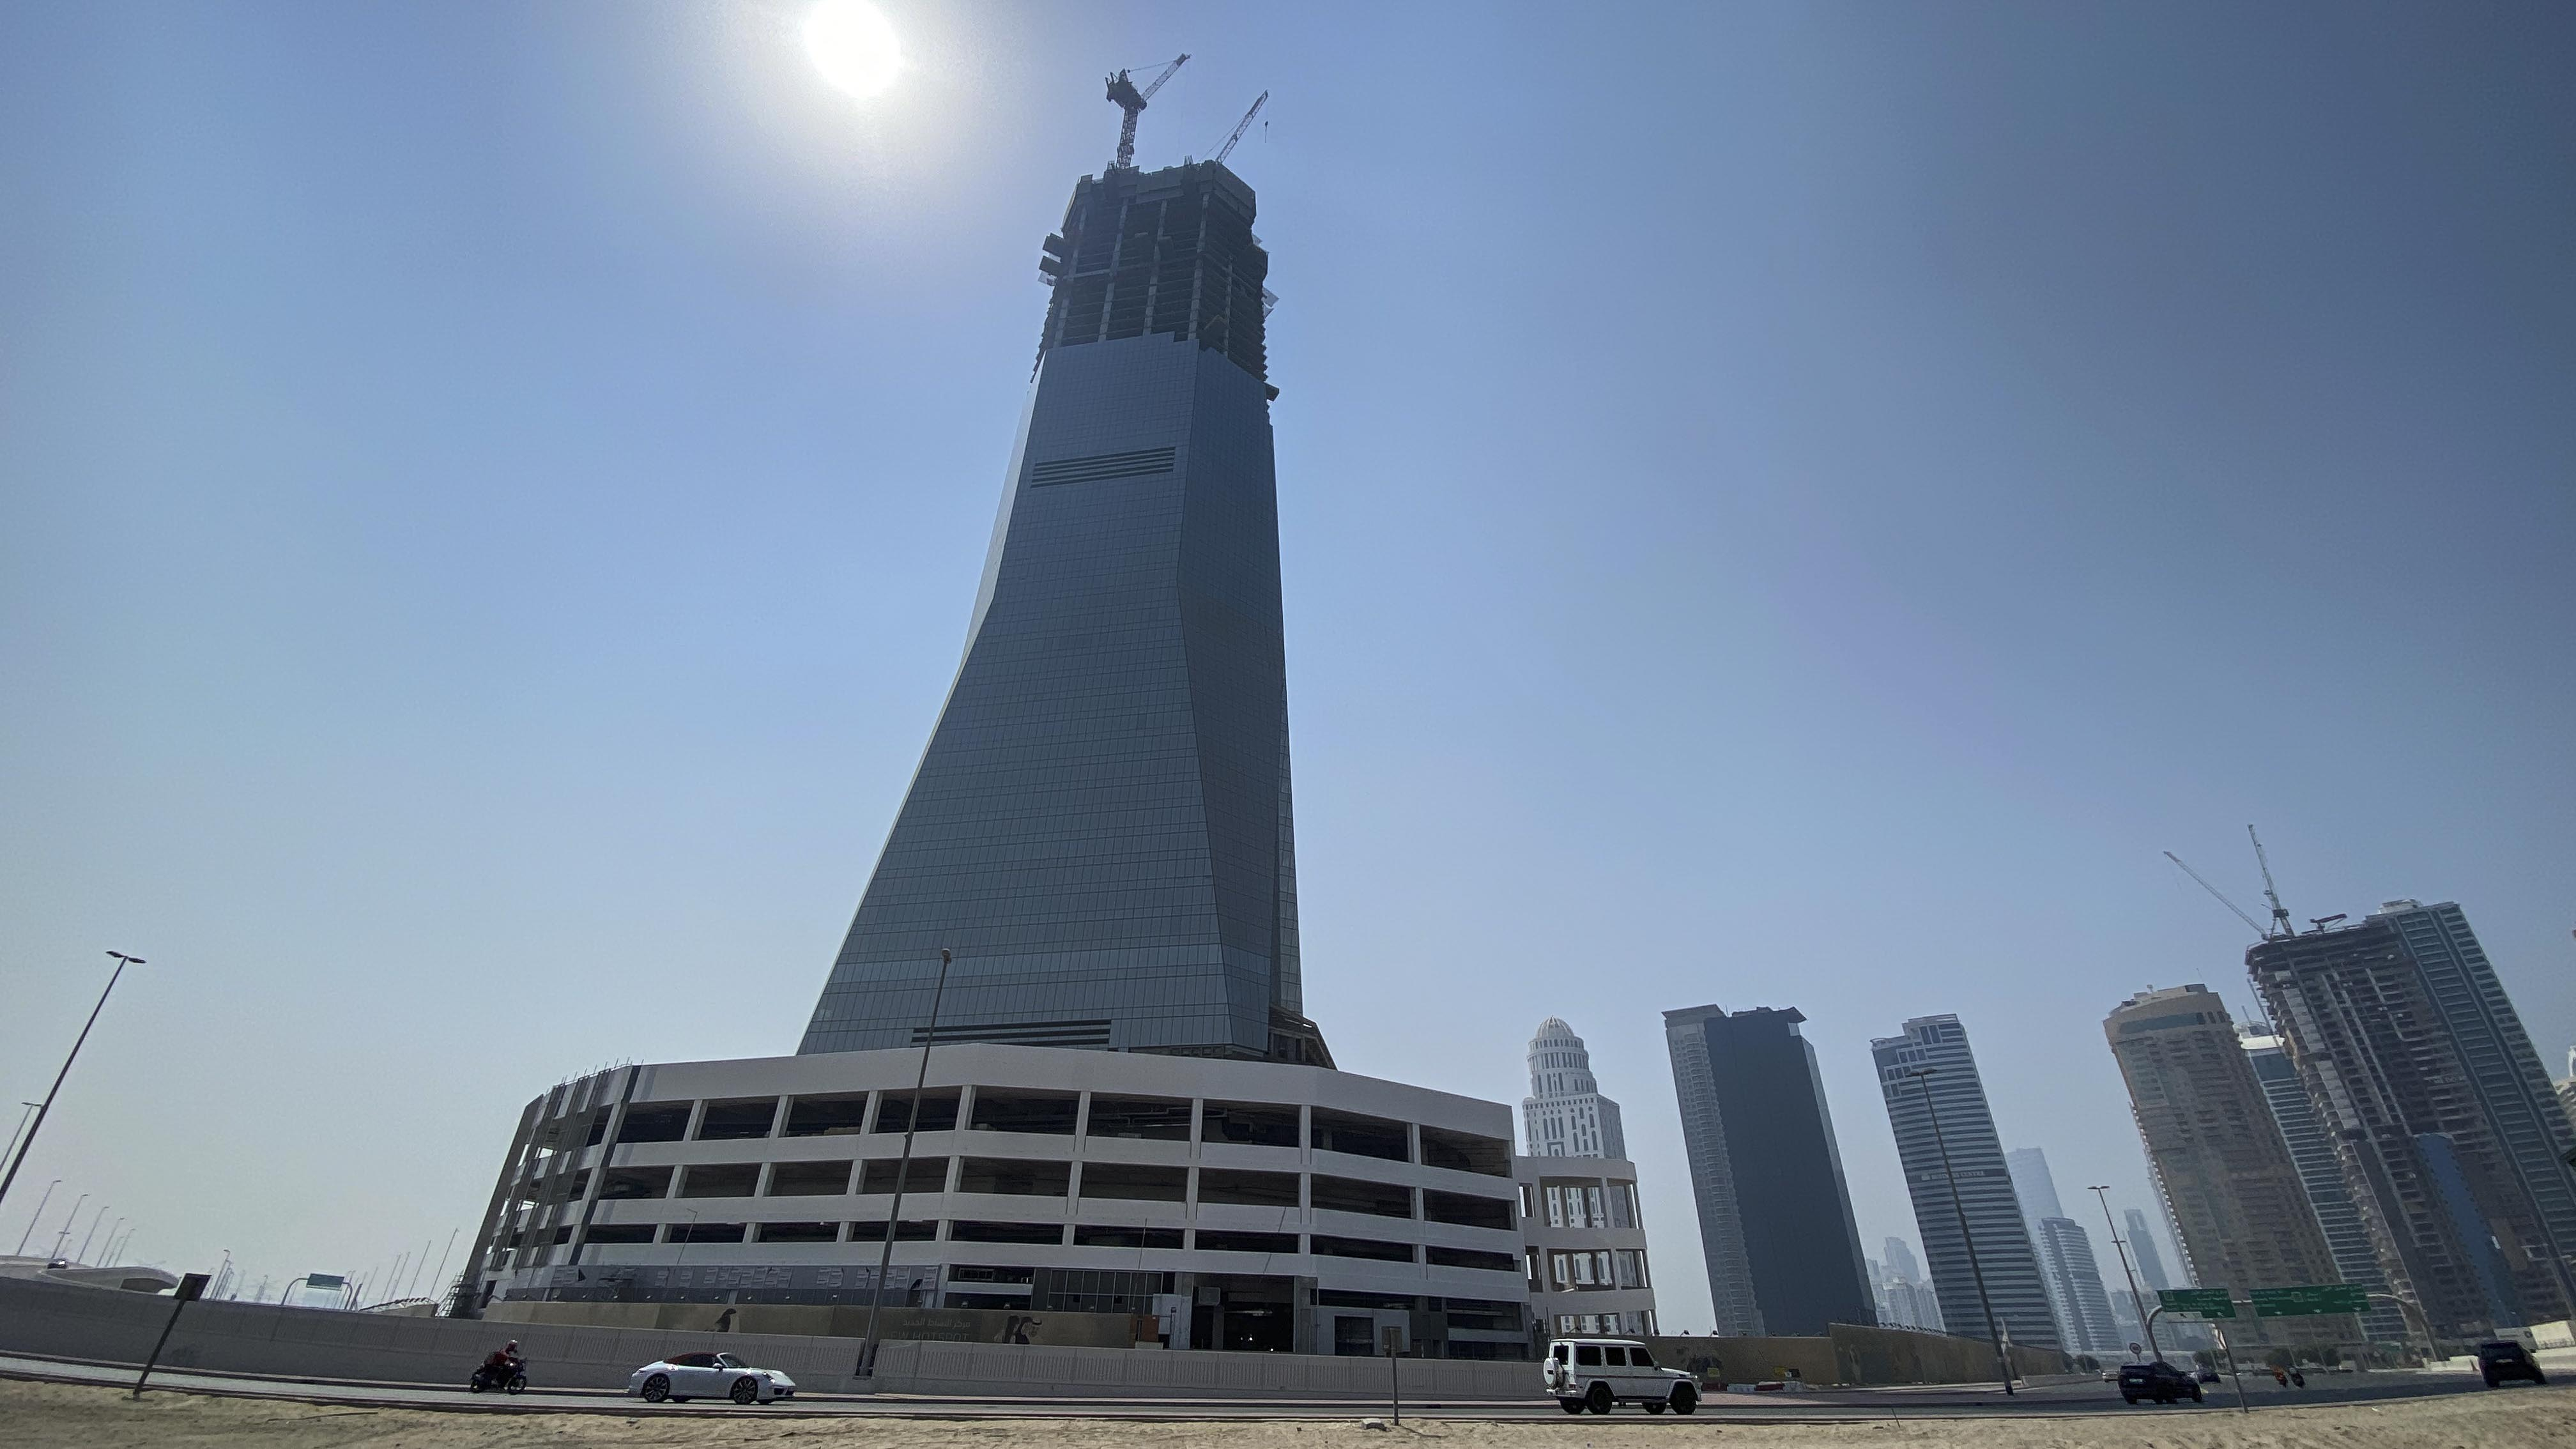 Robots scale new heights to build Dubai's latest high-rise